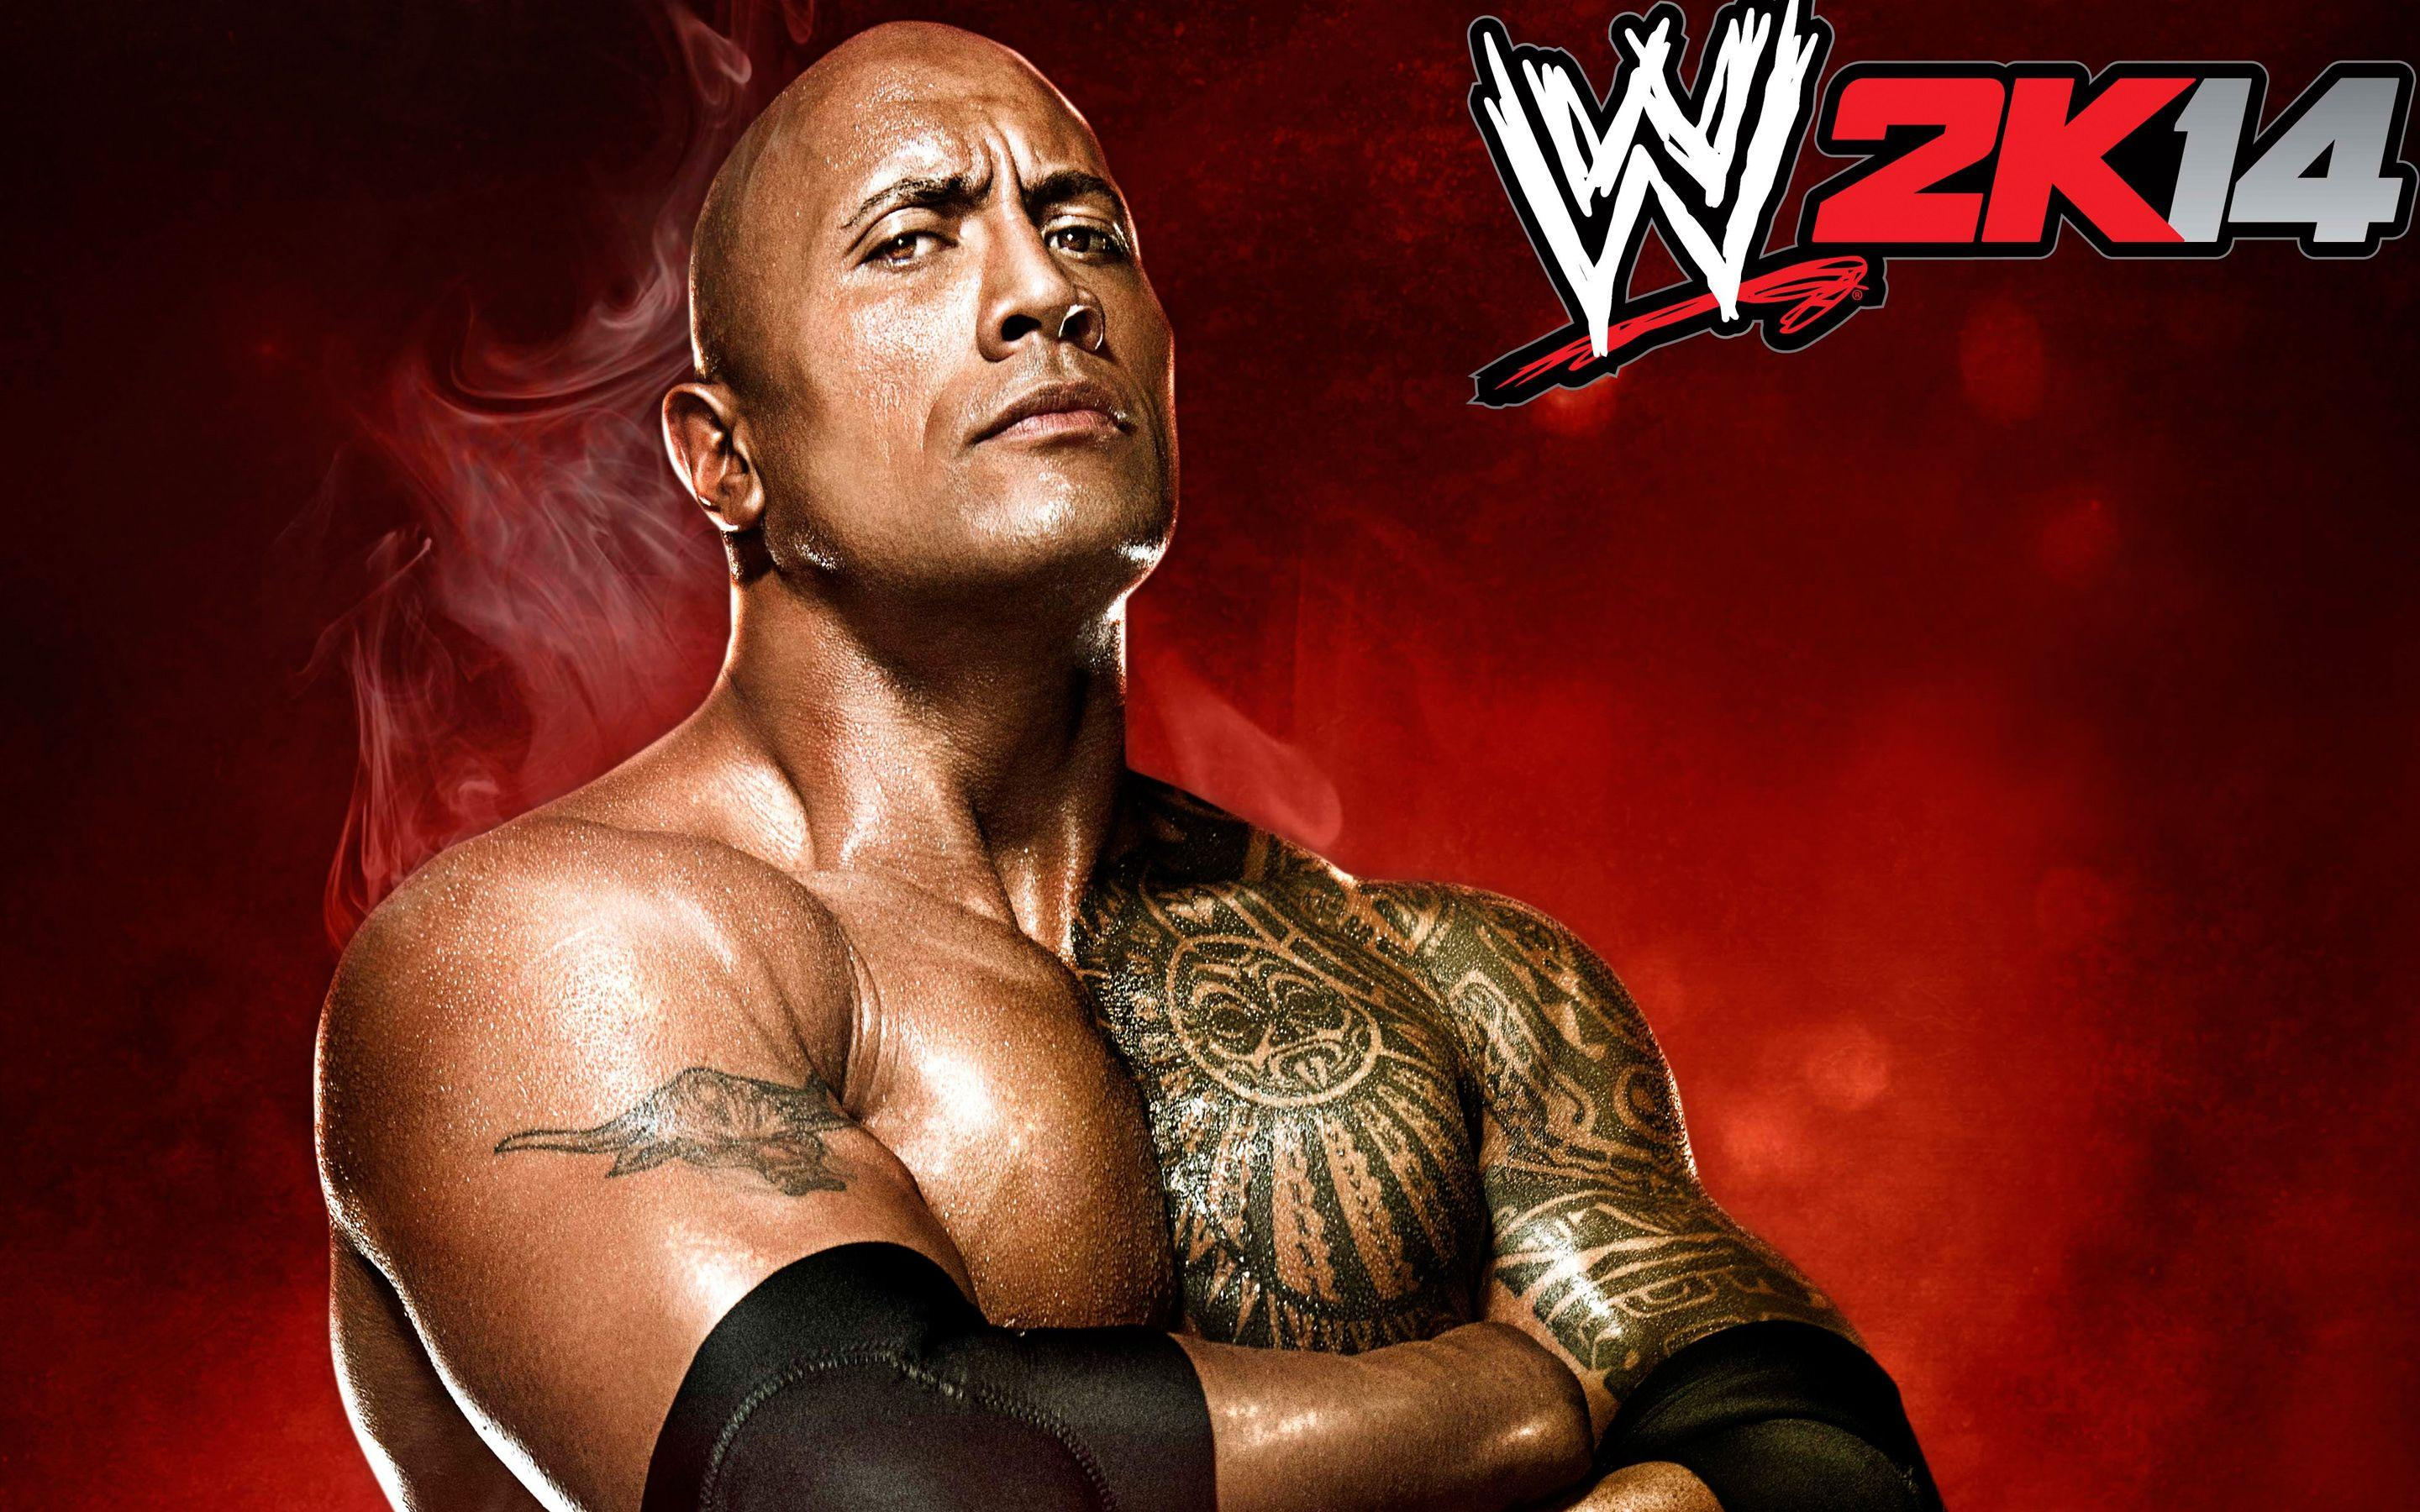 wwe 2k14 wallpapers 1366x768 hd - wallpaper cave